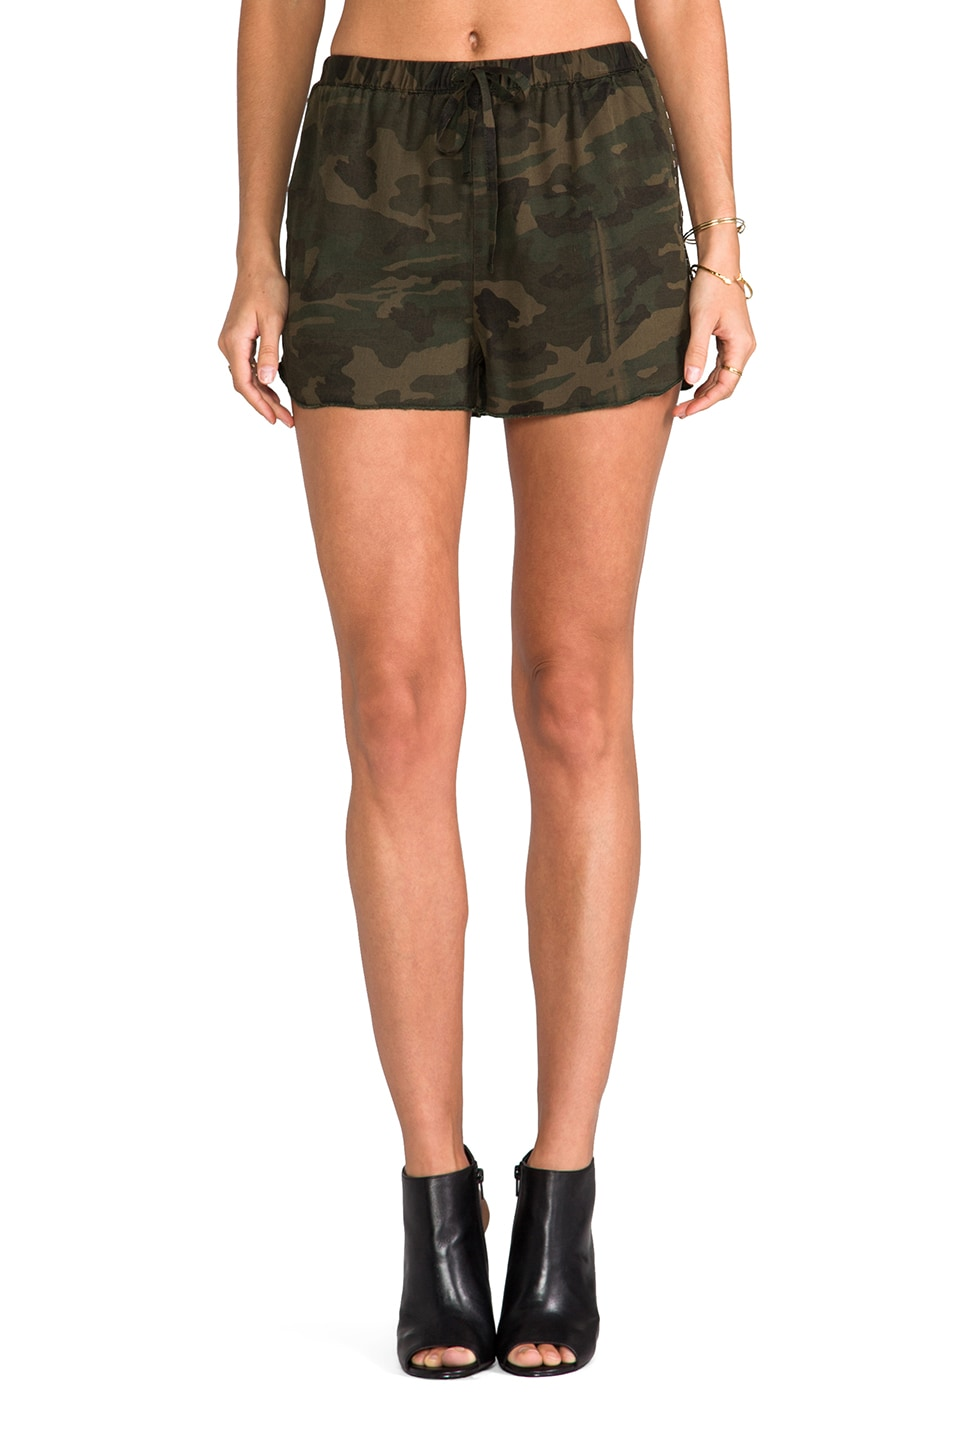 Lovers + Friends for REVOLVE Adore Shorts in Camo